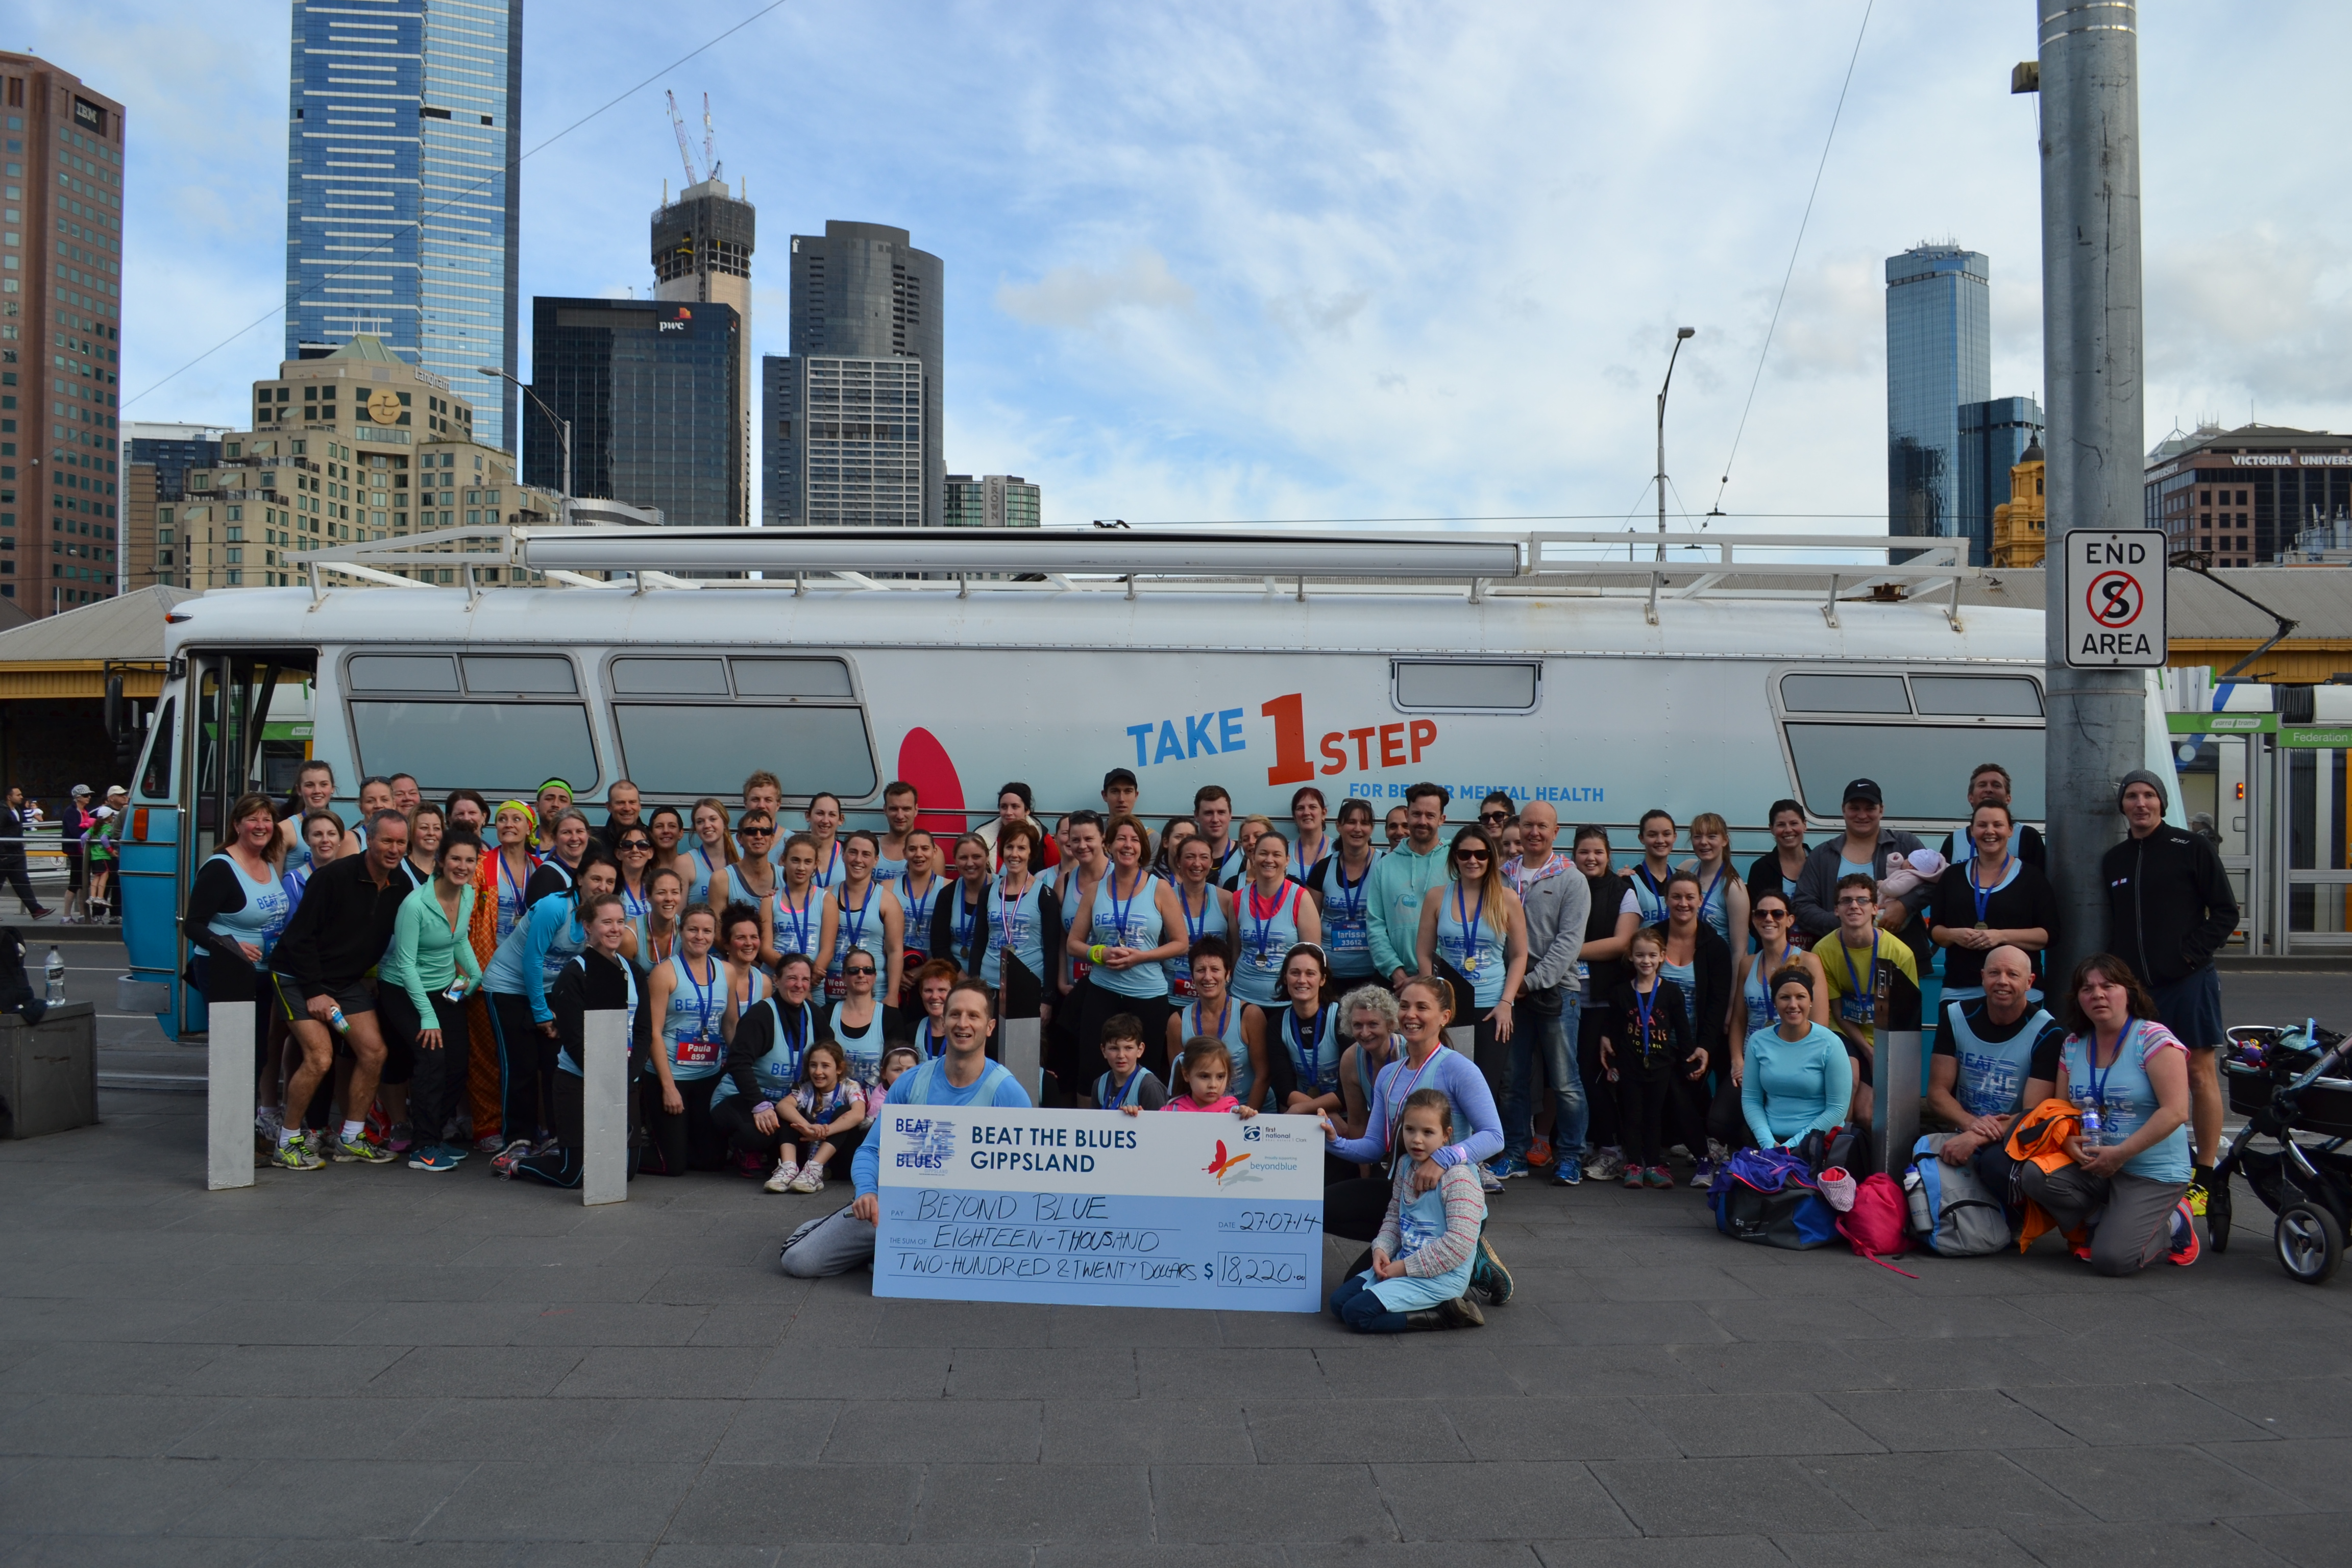 The incredible 'Beat the Blues Gippsland' team raised over $18,000 for Beyond Blue.